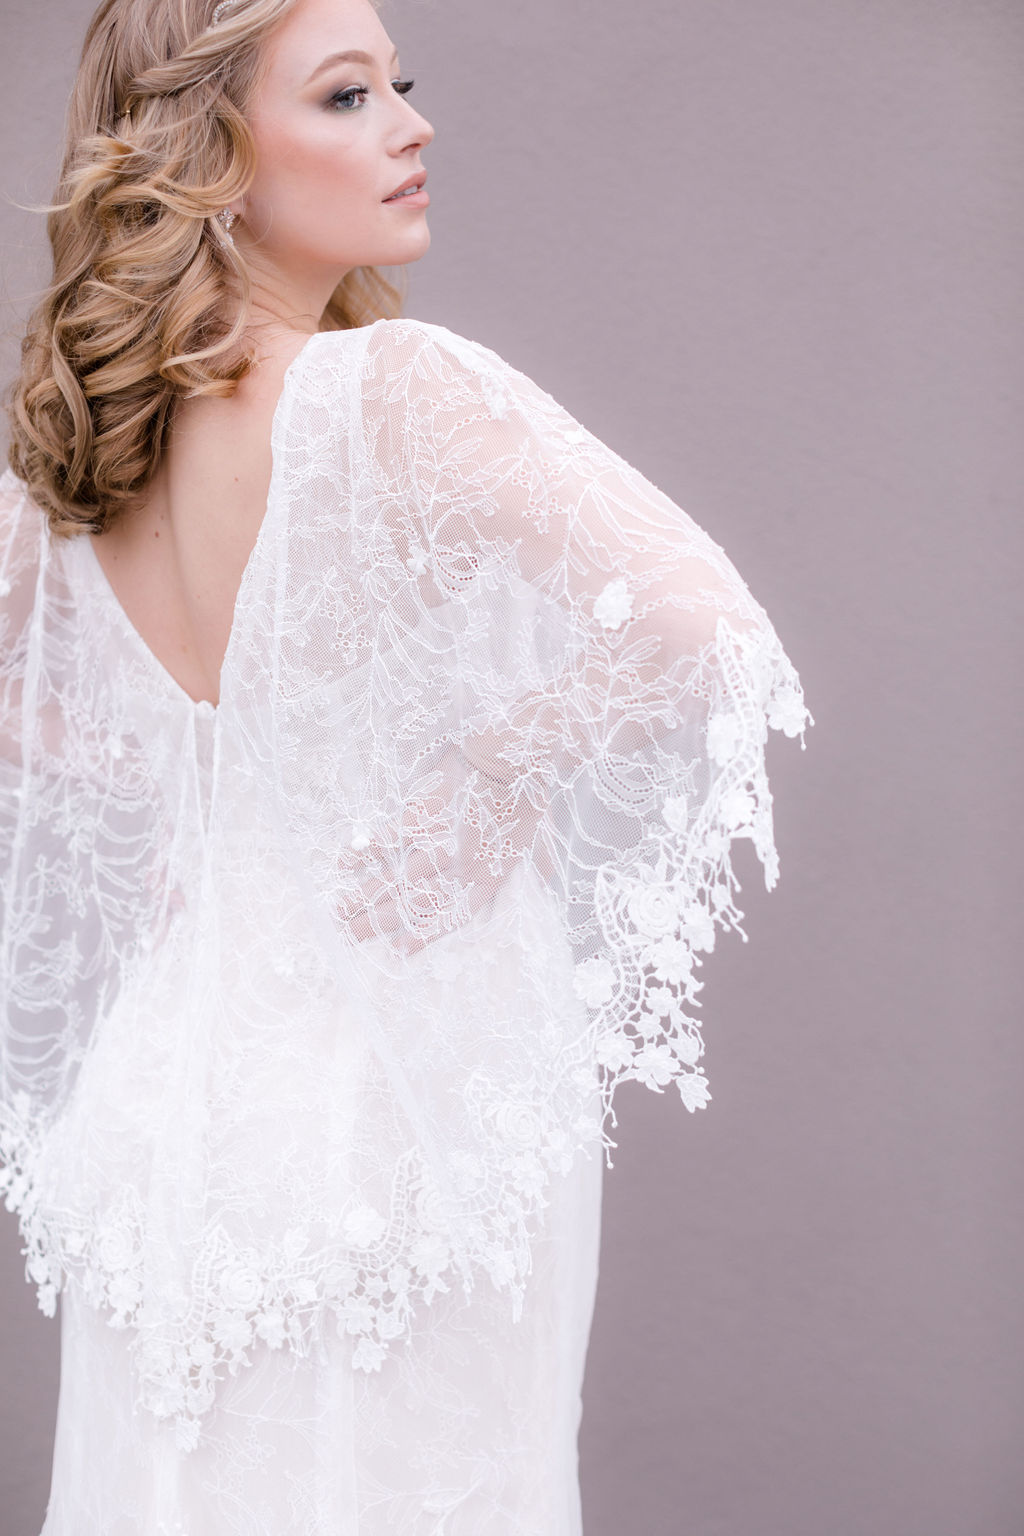 detail hot of bride's wedding dress with lace capelet